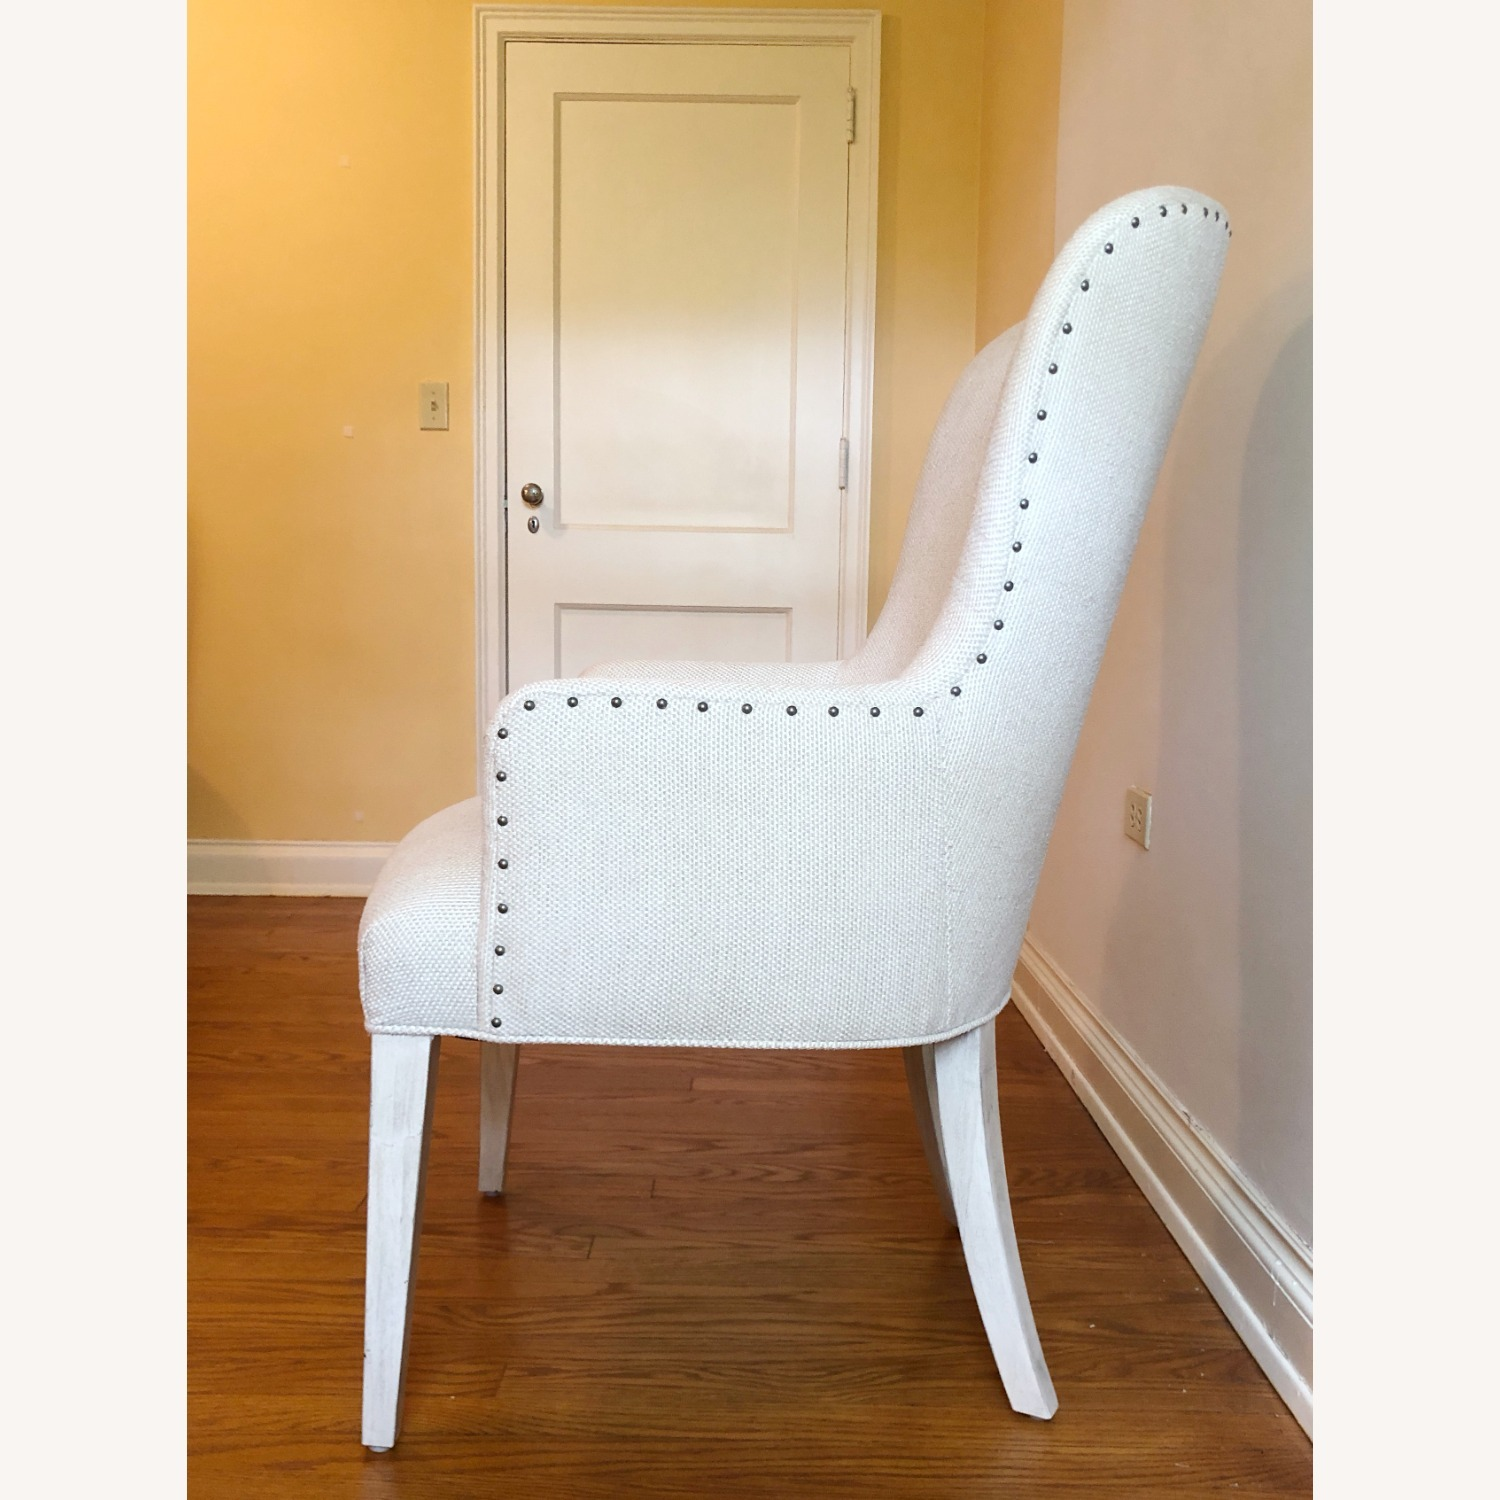 Oyster Bay Baxter Upholstered Arm Chair - image-2